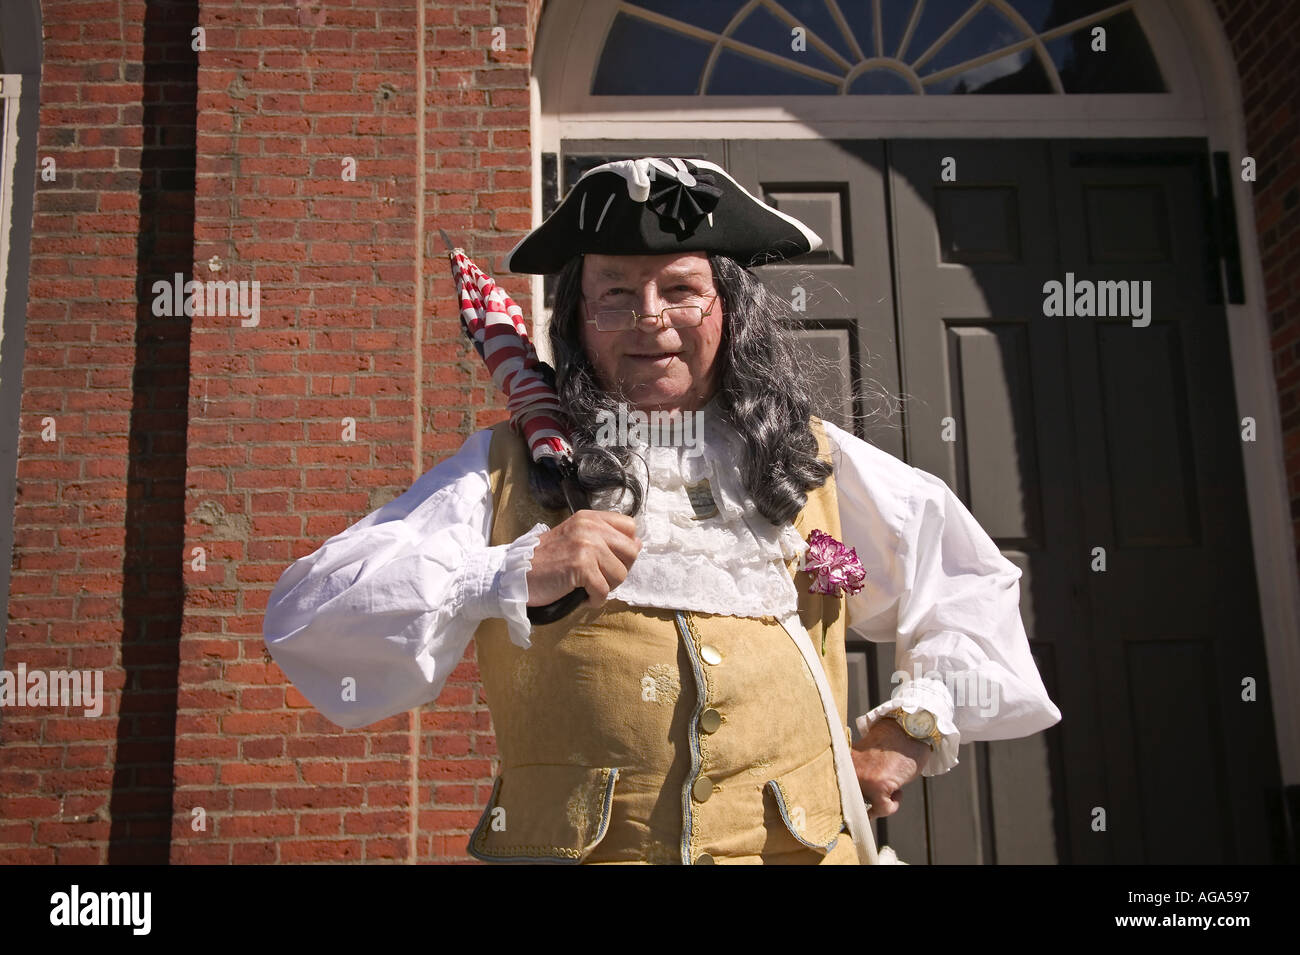 A colonial costumed gentleman dressed to look like Benjamin Franklin poses for photographs at Faneuil Hall in Boston MA - Stock Image